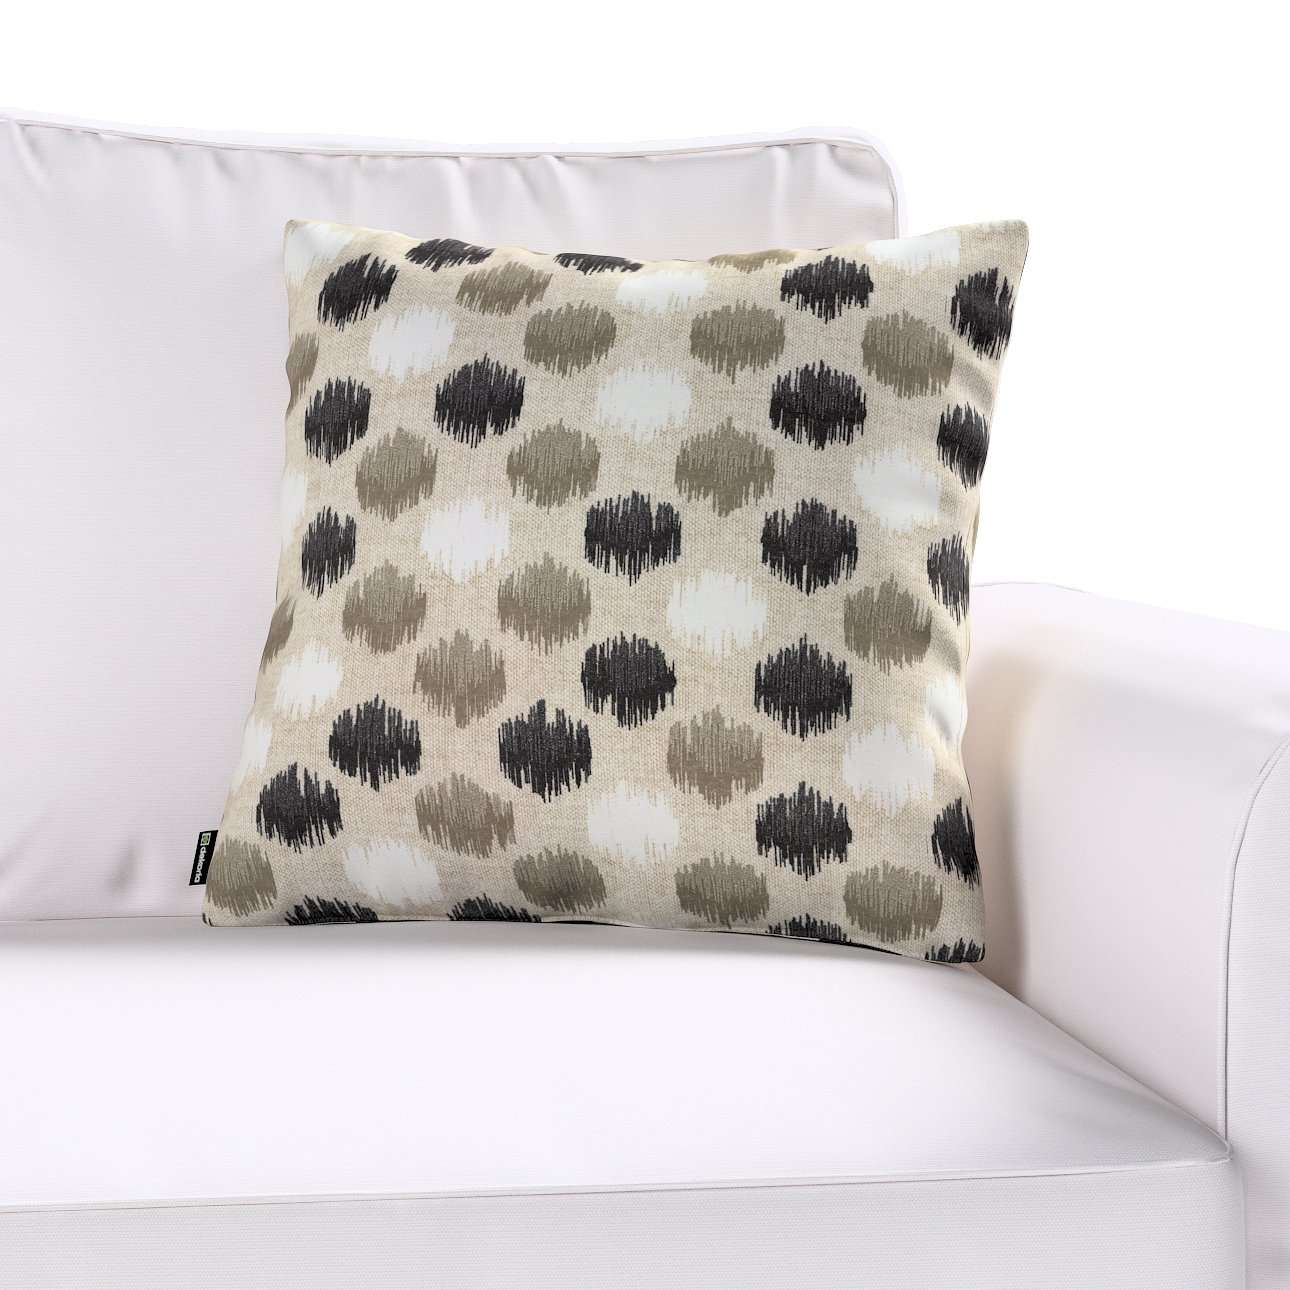 Kinga cushion cover in collection Modern, fabric: 141-89